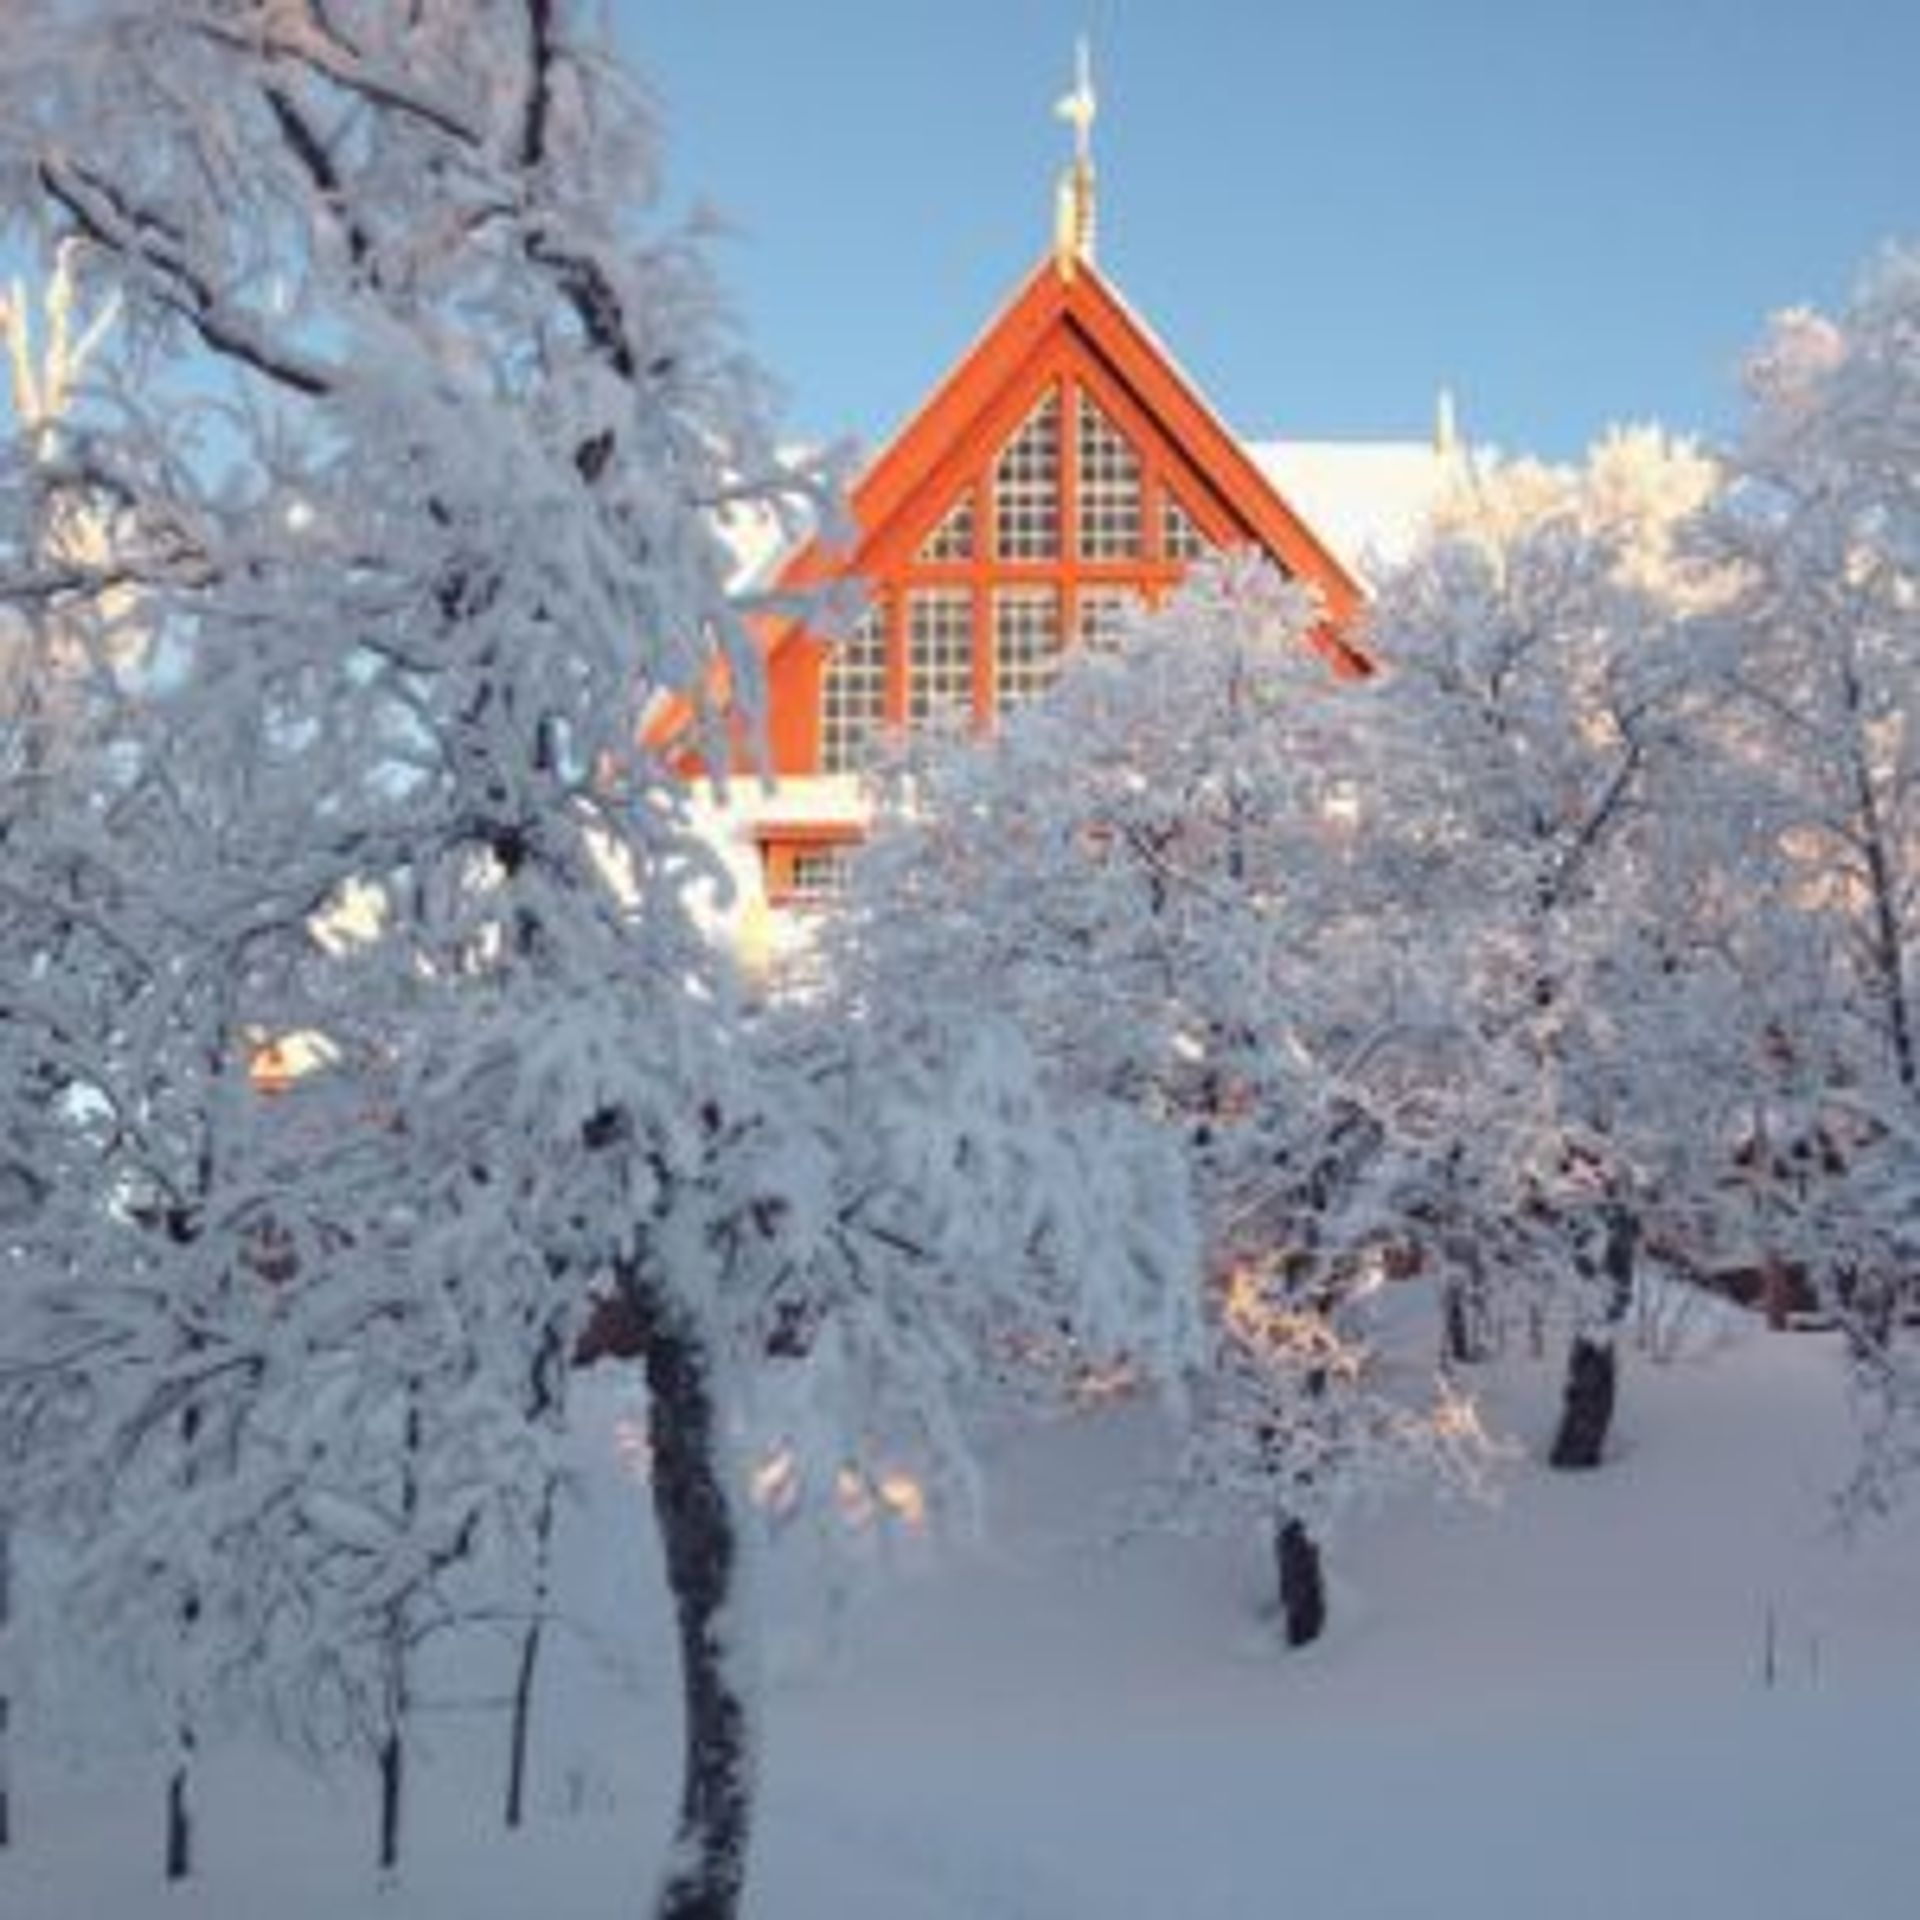 Church in Kiruna, Northern Sweden in January 2018